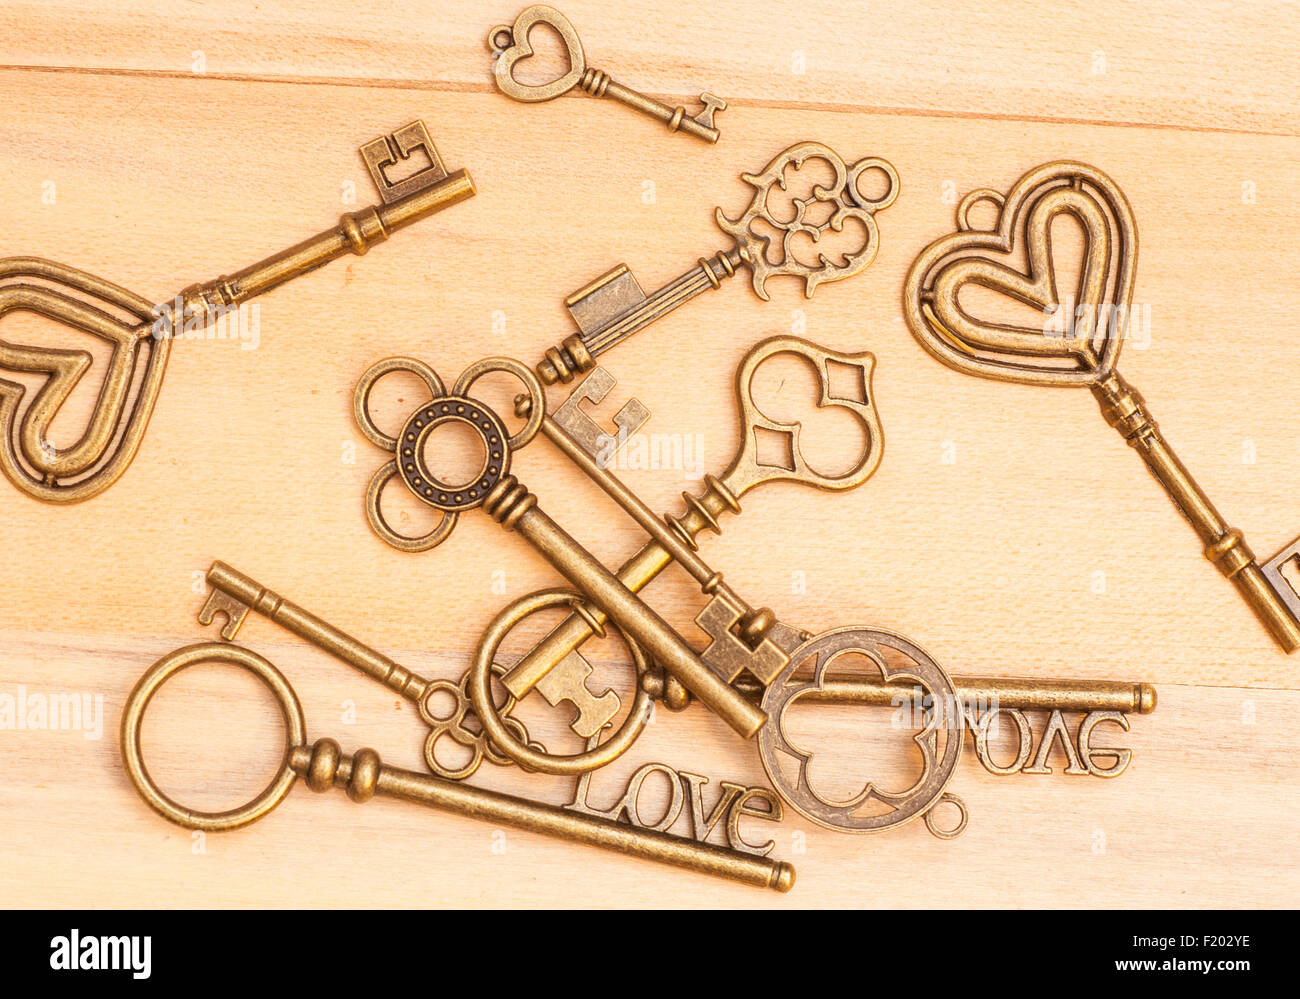 Old Rusted Keys Background Texture Stock Photos & Old Rusted Keys ...